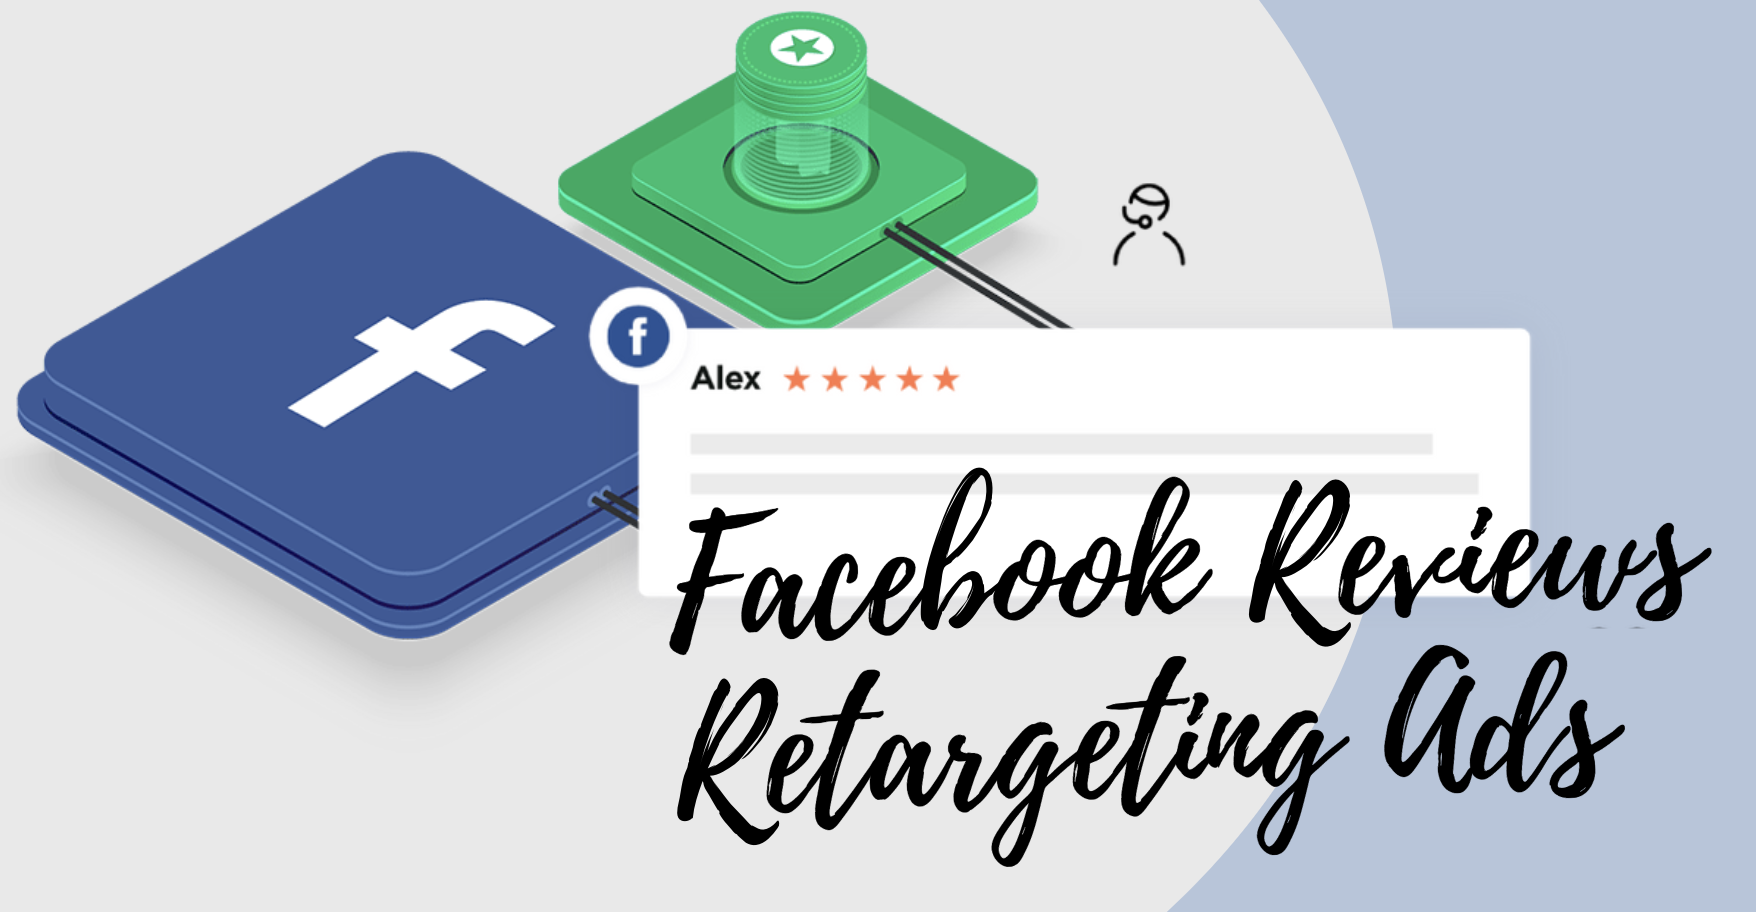 Facebook Reviews Retargeting Ads Launched